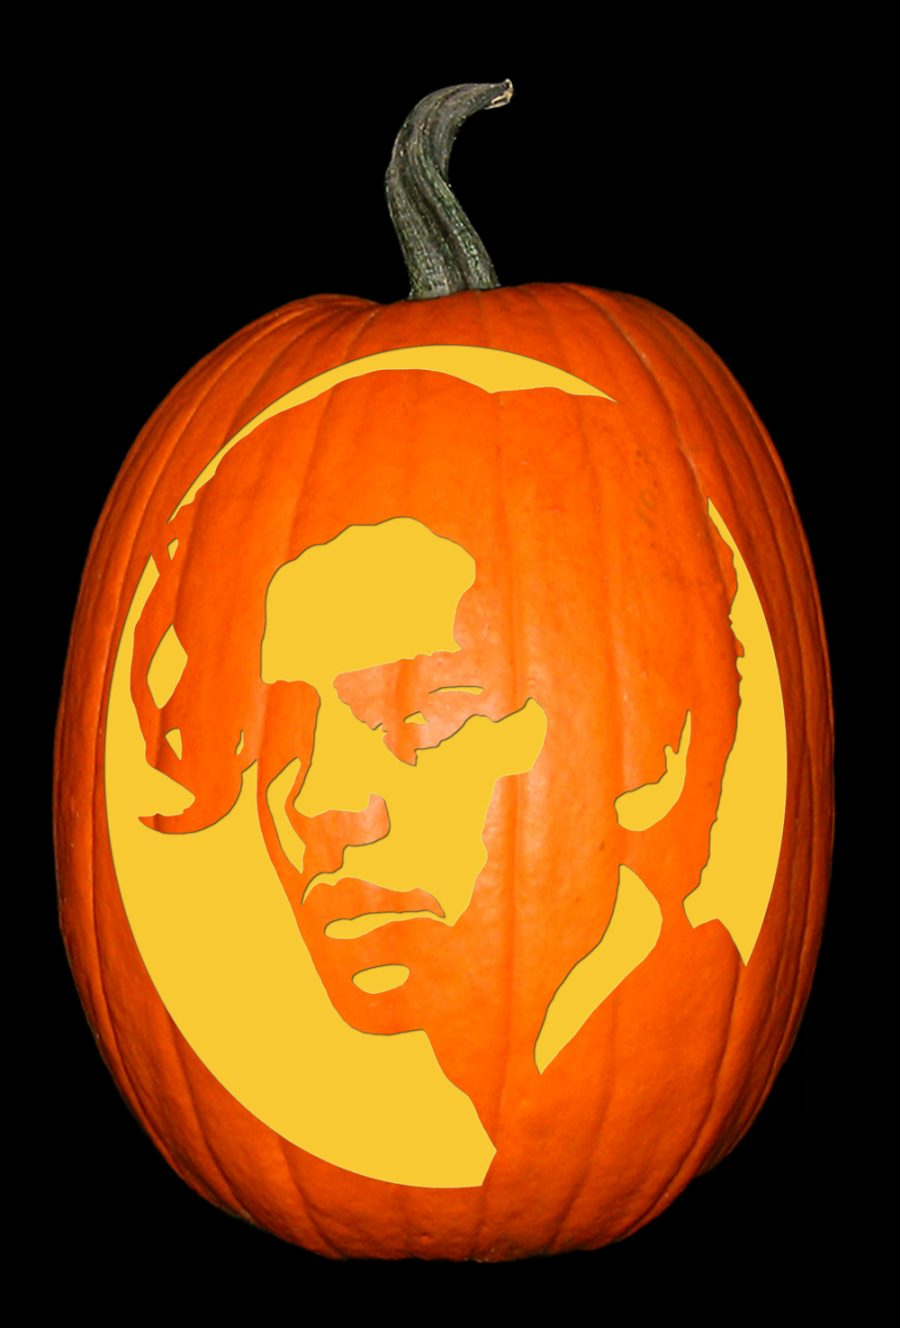 Cole Sprouse Pumpkin